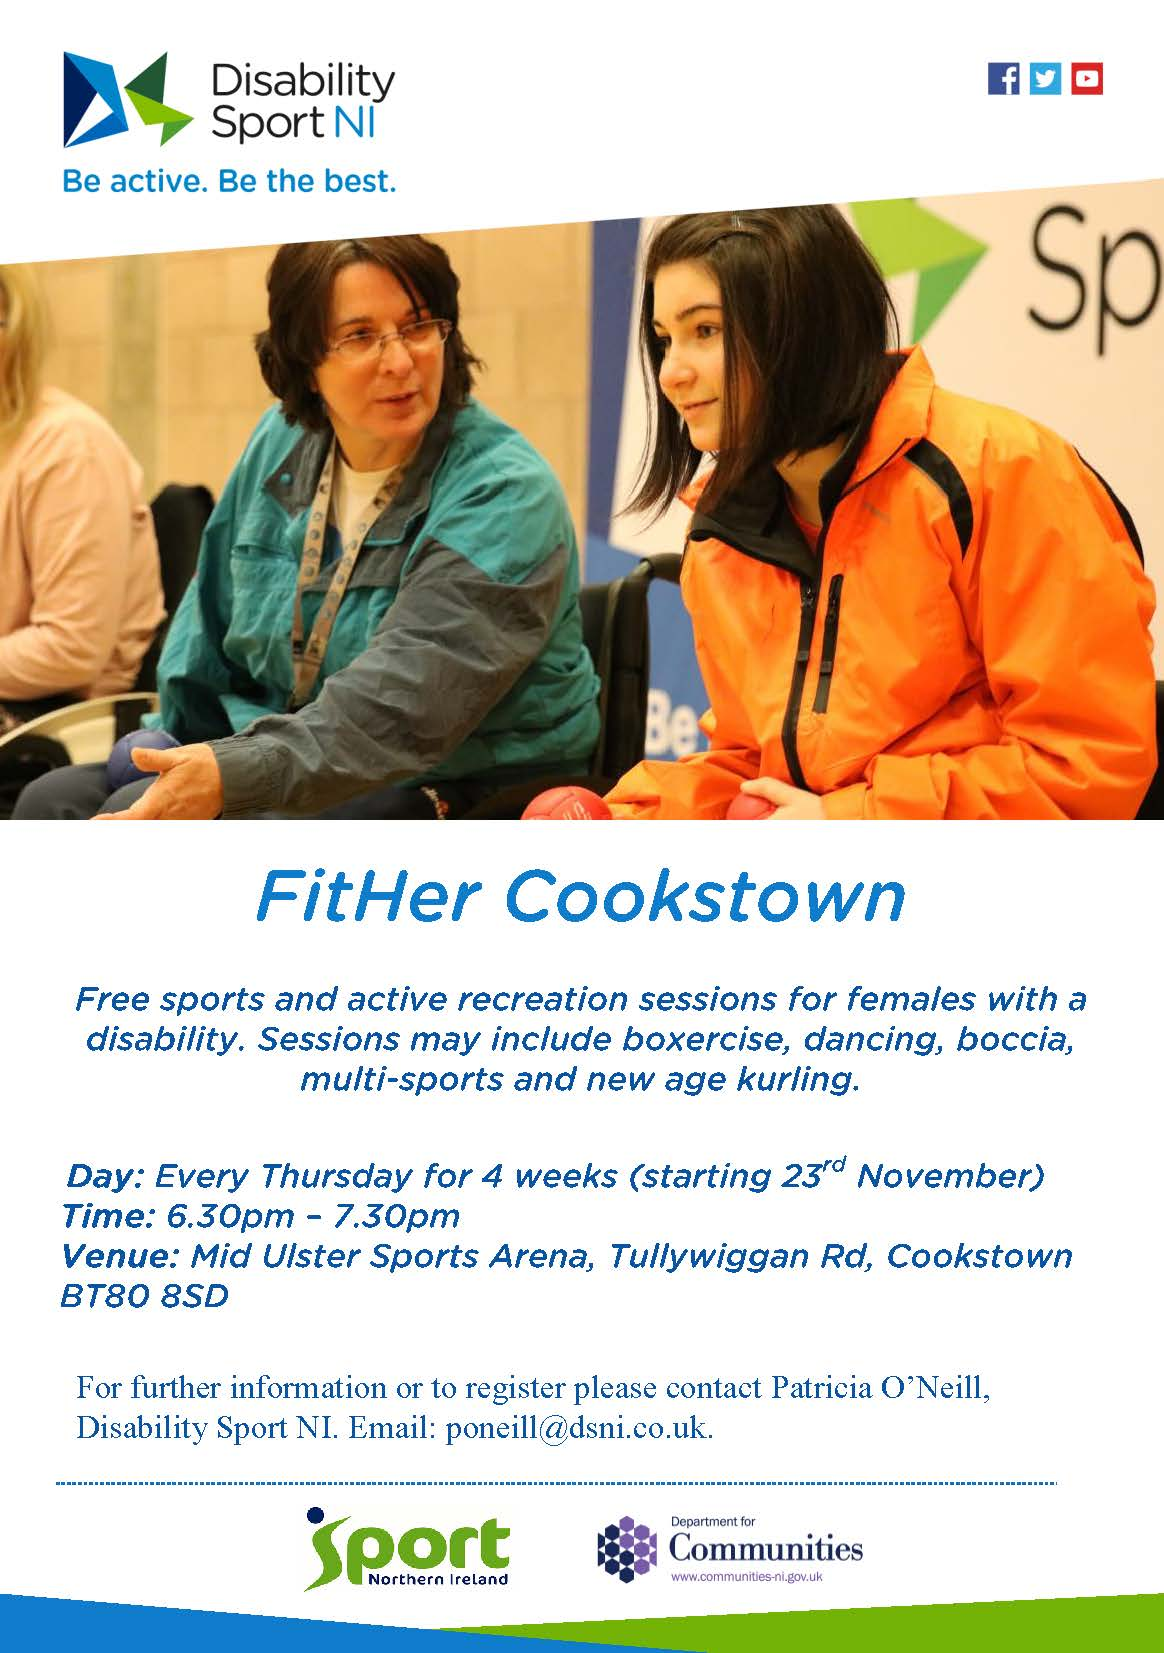 Poster for FitHer Cookstown outlining details as per website